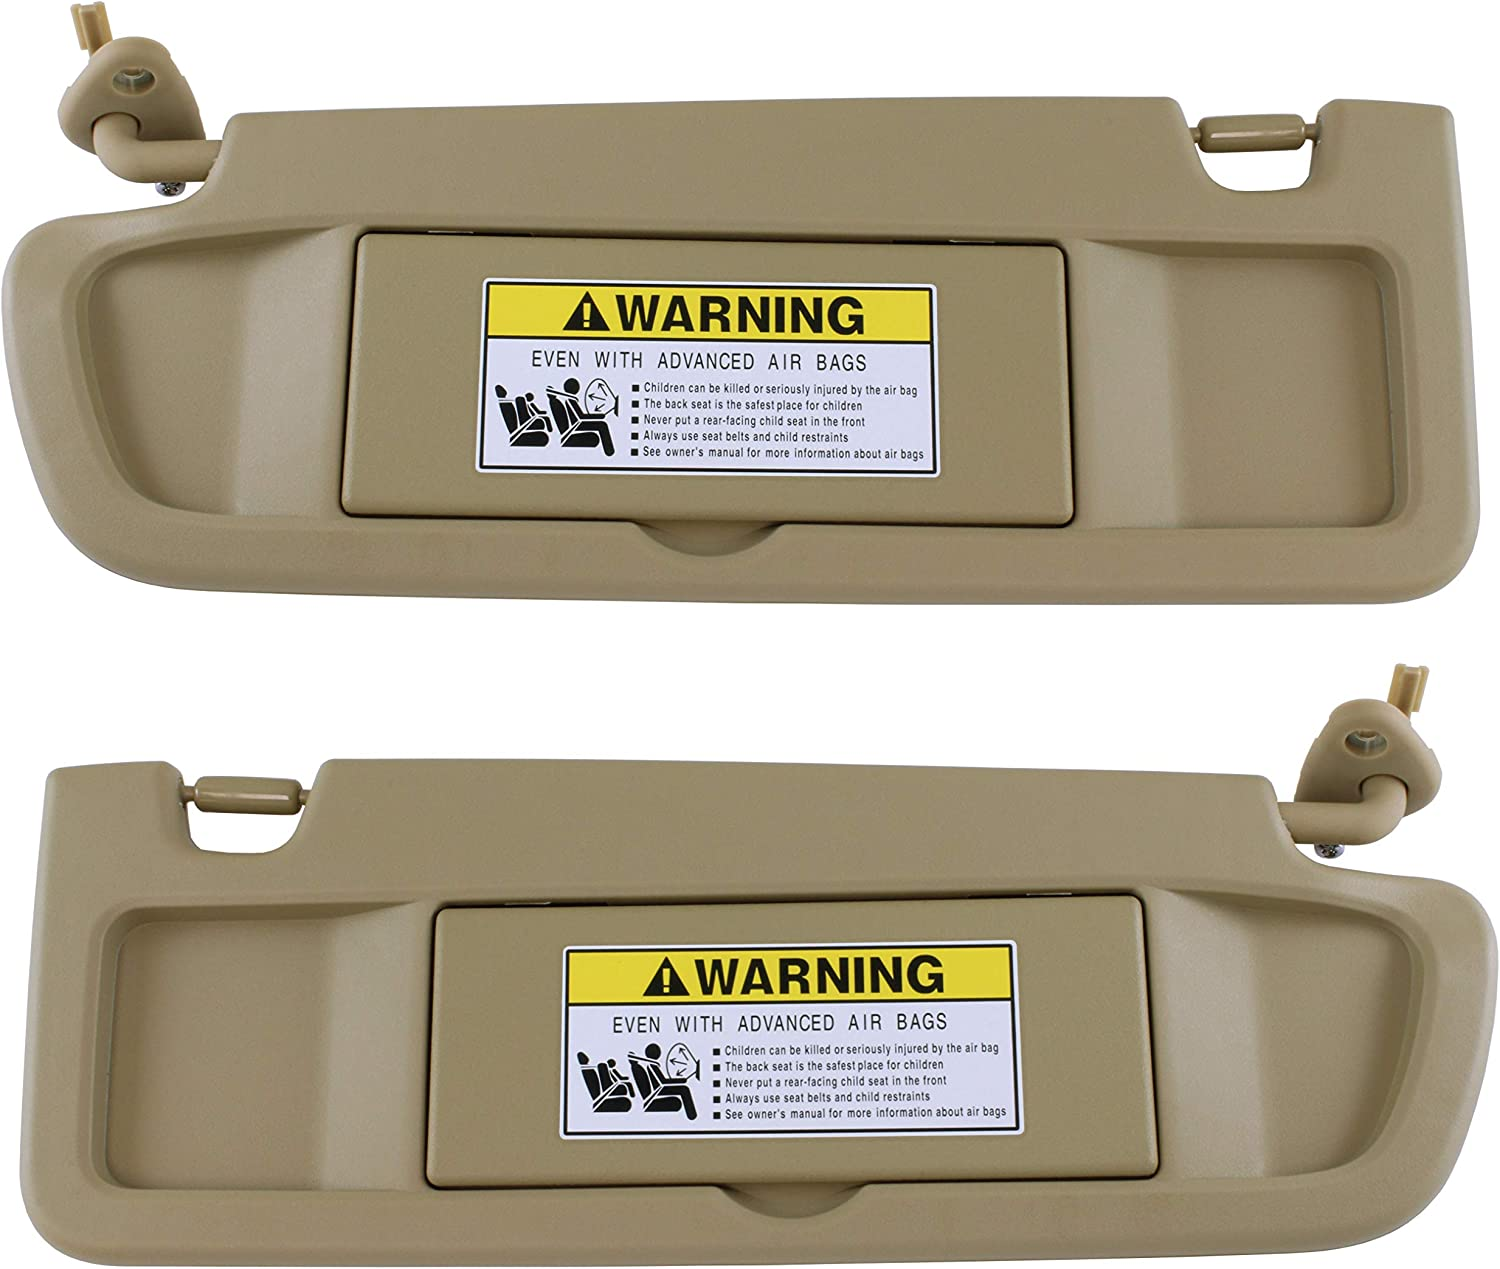 83280-SNA-A01ZB UNIGT Driver Left Pearl Ivory Sun Visor Assembly Replace for 2006 2007 2008 2009 2010 Civic Sunvisor